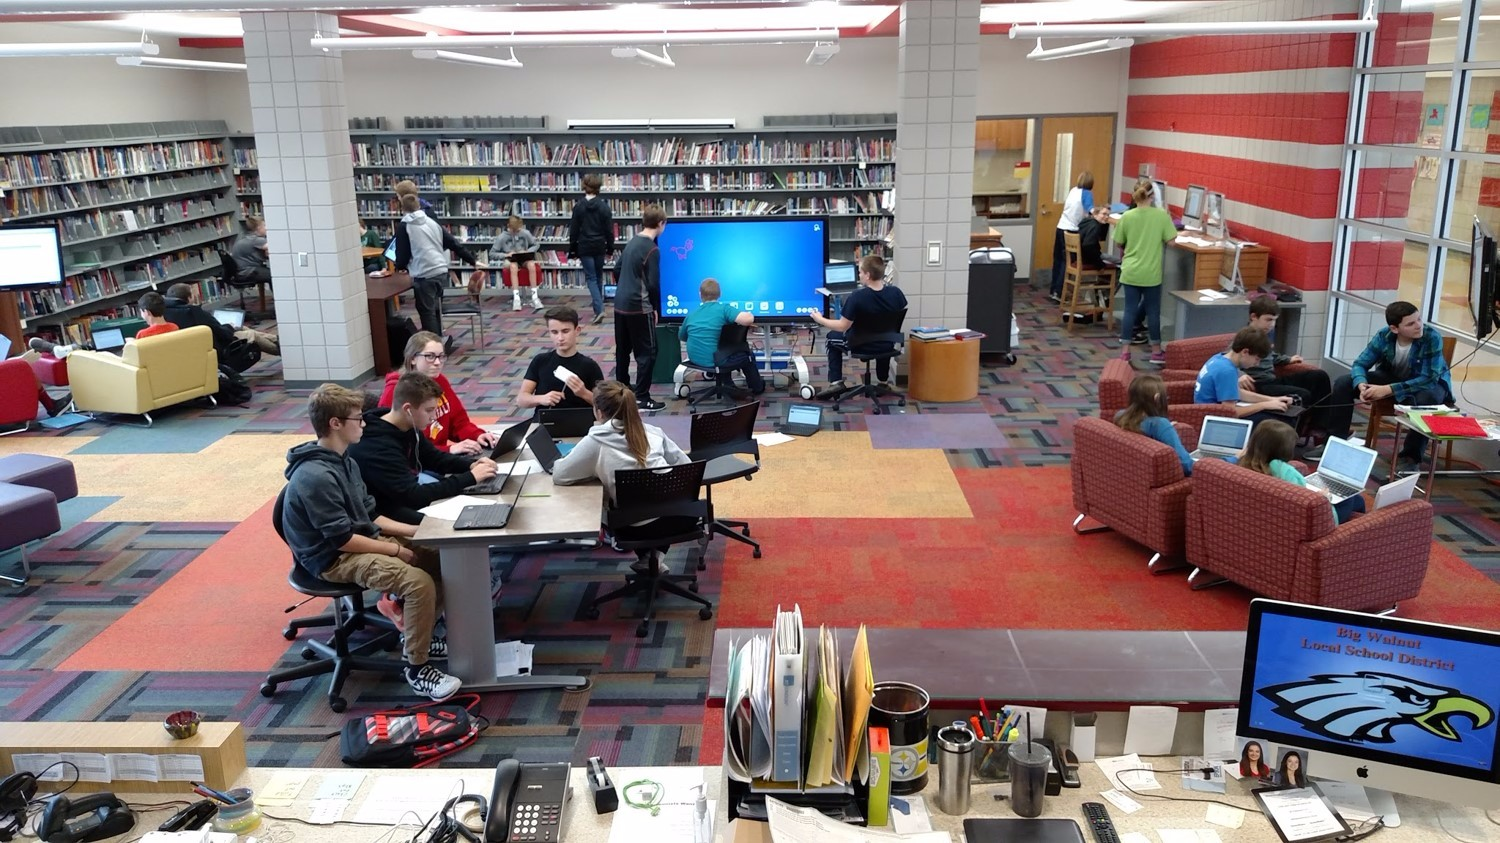 How A School Library Increased Student Use By 1,000